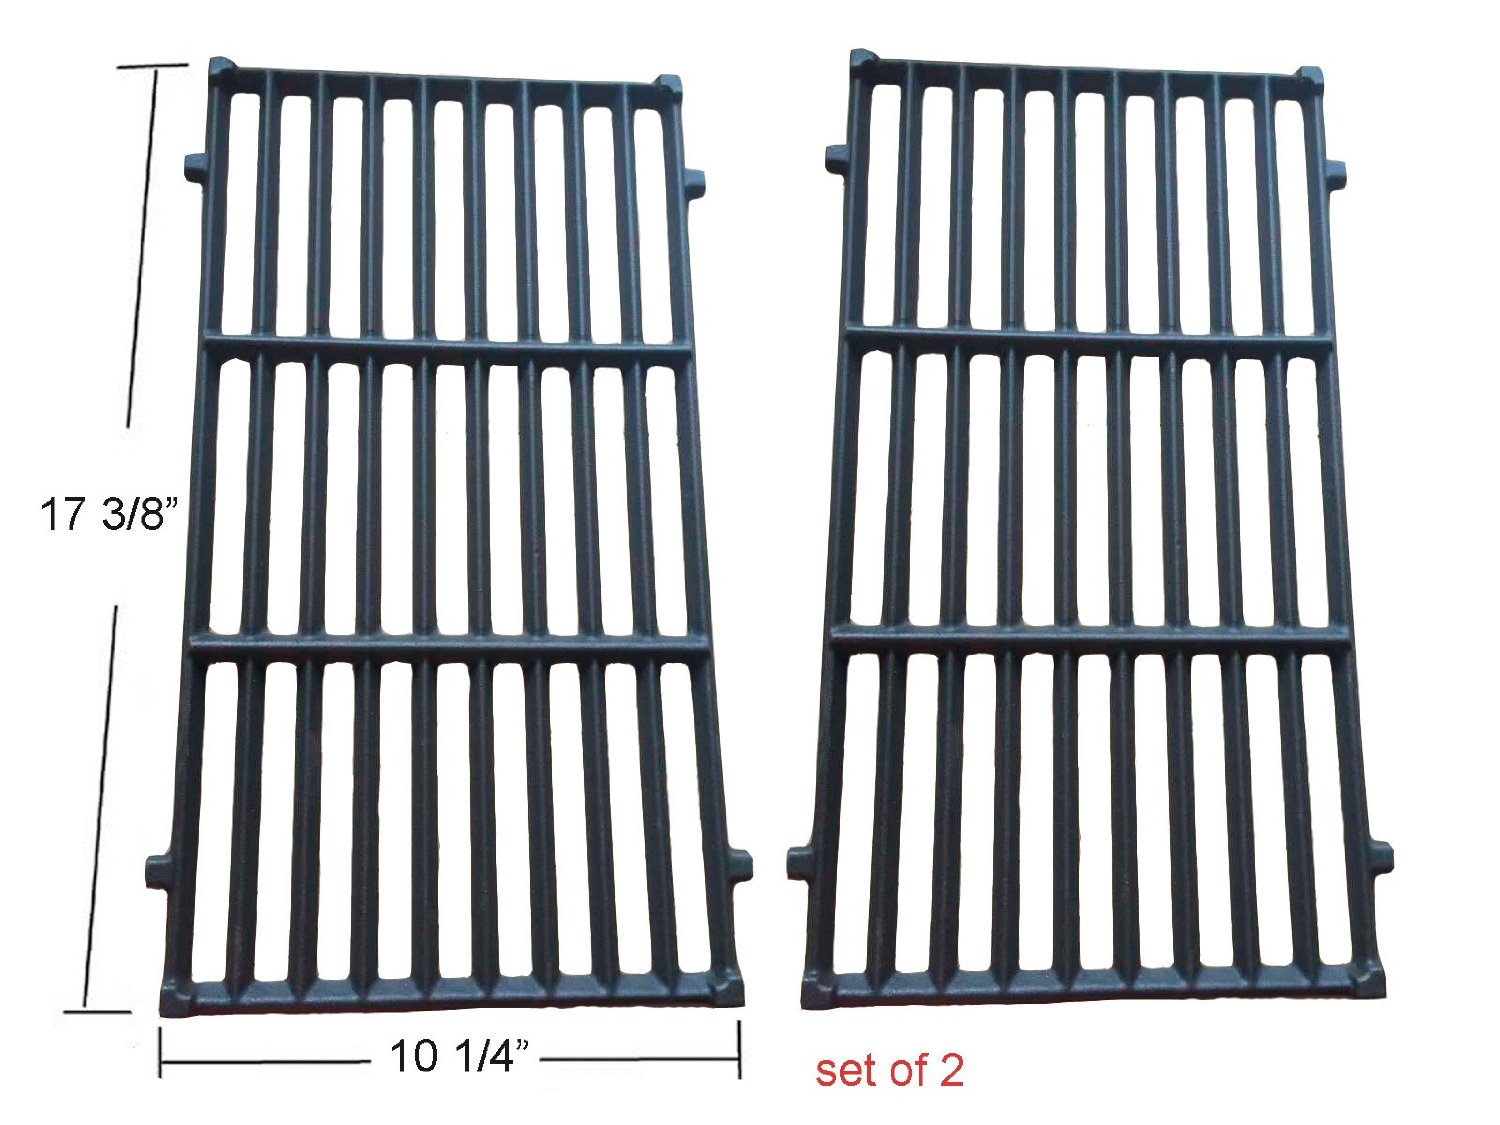 BBQ funland GI637 Cast Iron Cooking Grates for Weber Spirit 200 Series Gas Grills, SET of 2